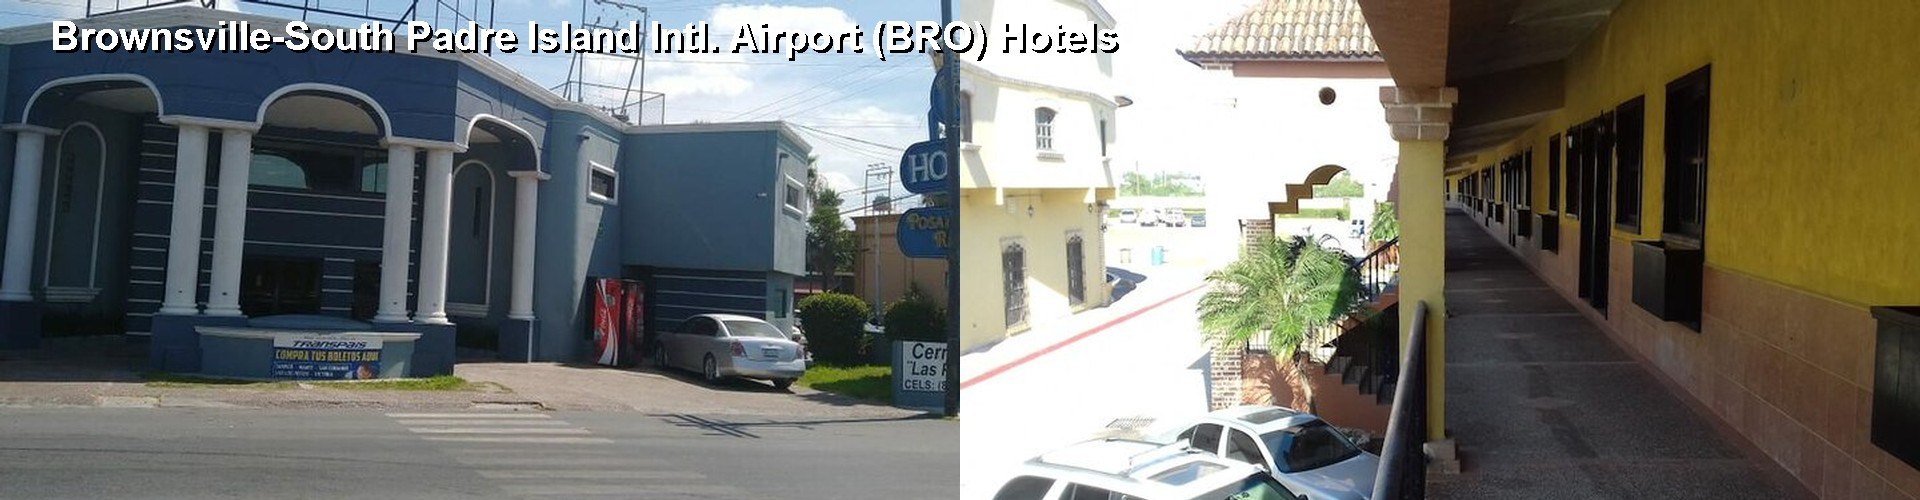 31 Hotels Near Brownsville South Padre Island Intl Airport Bro